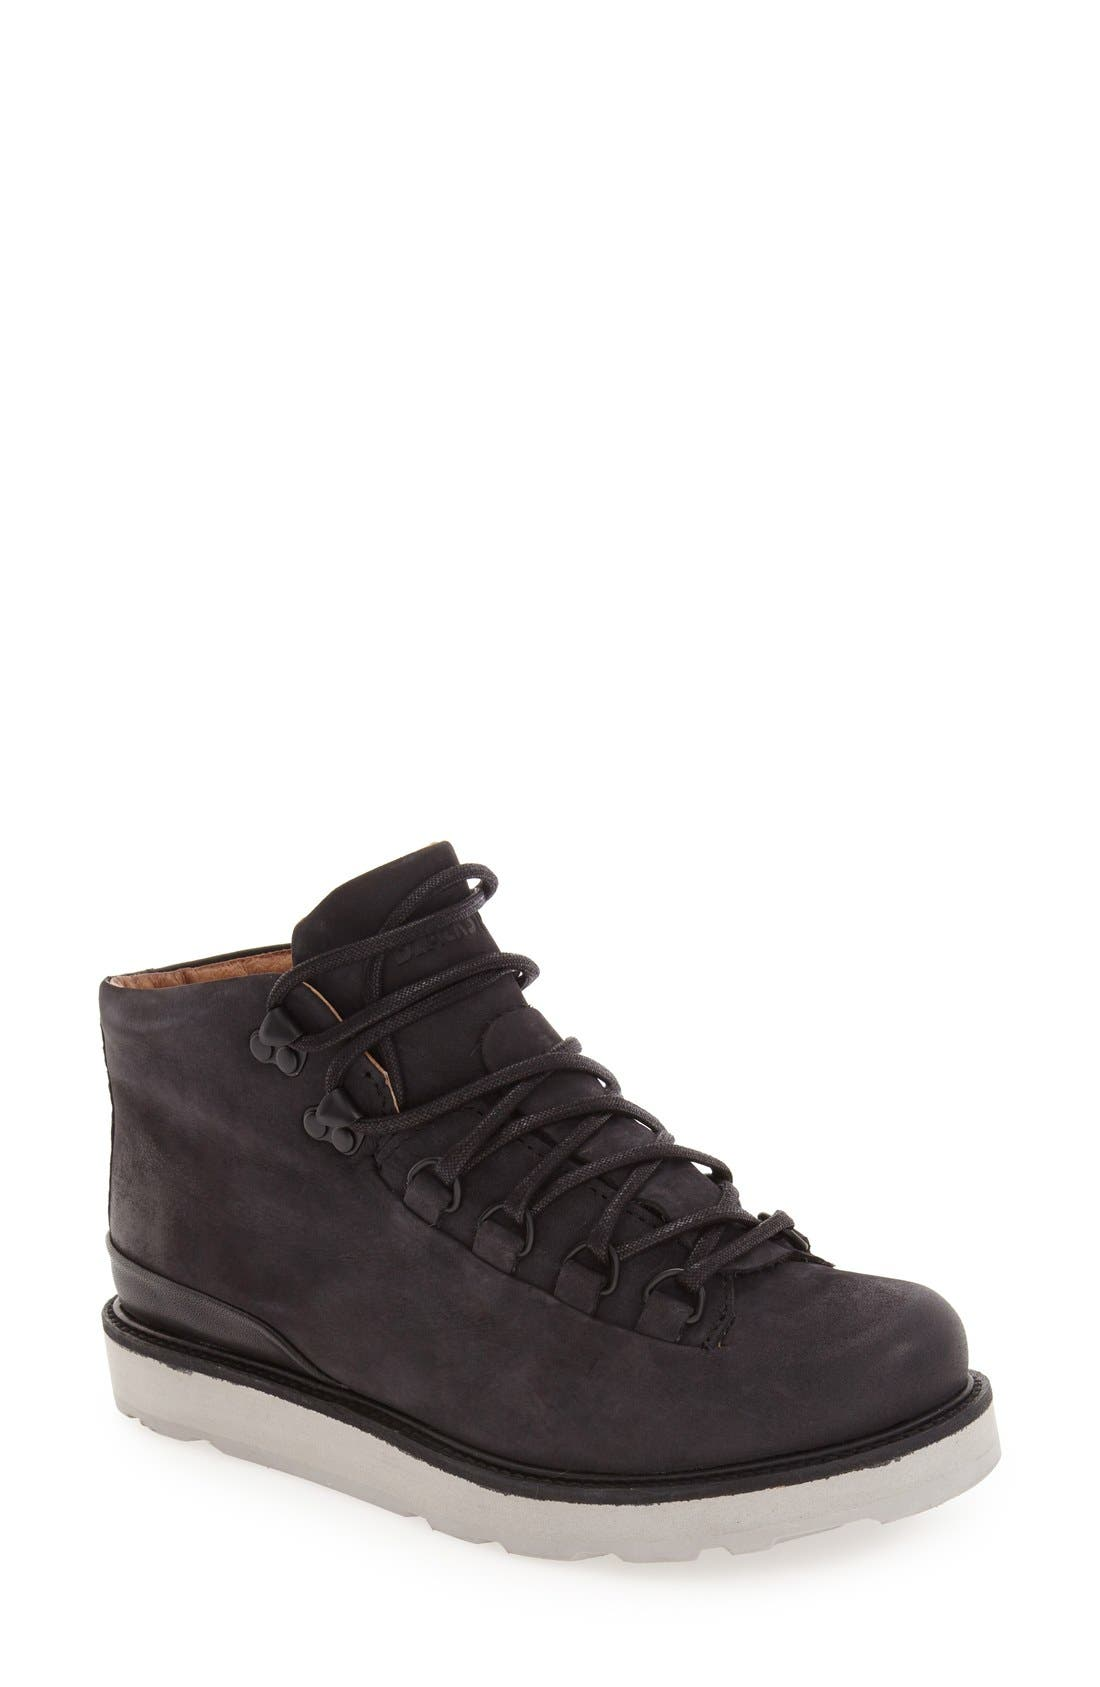 'MW76' Water Resistant Boot, Main, color, BLACK NUBUCK LEATHER